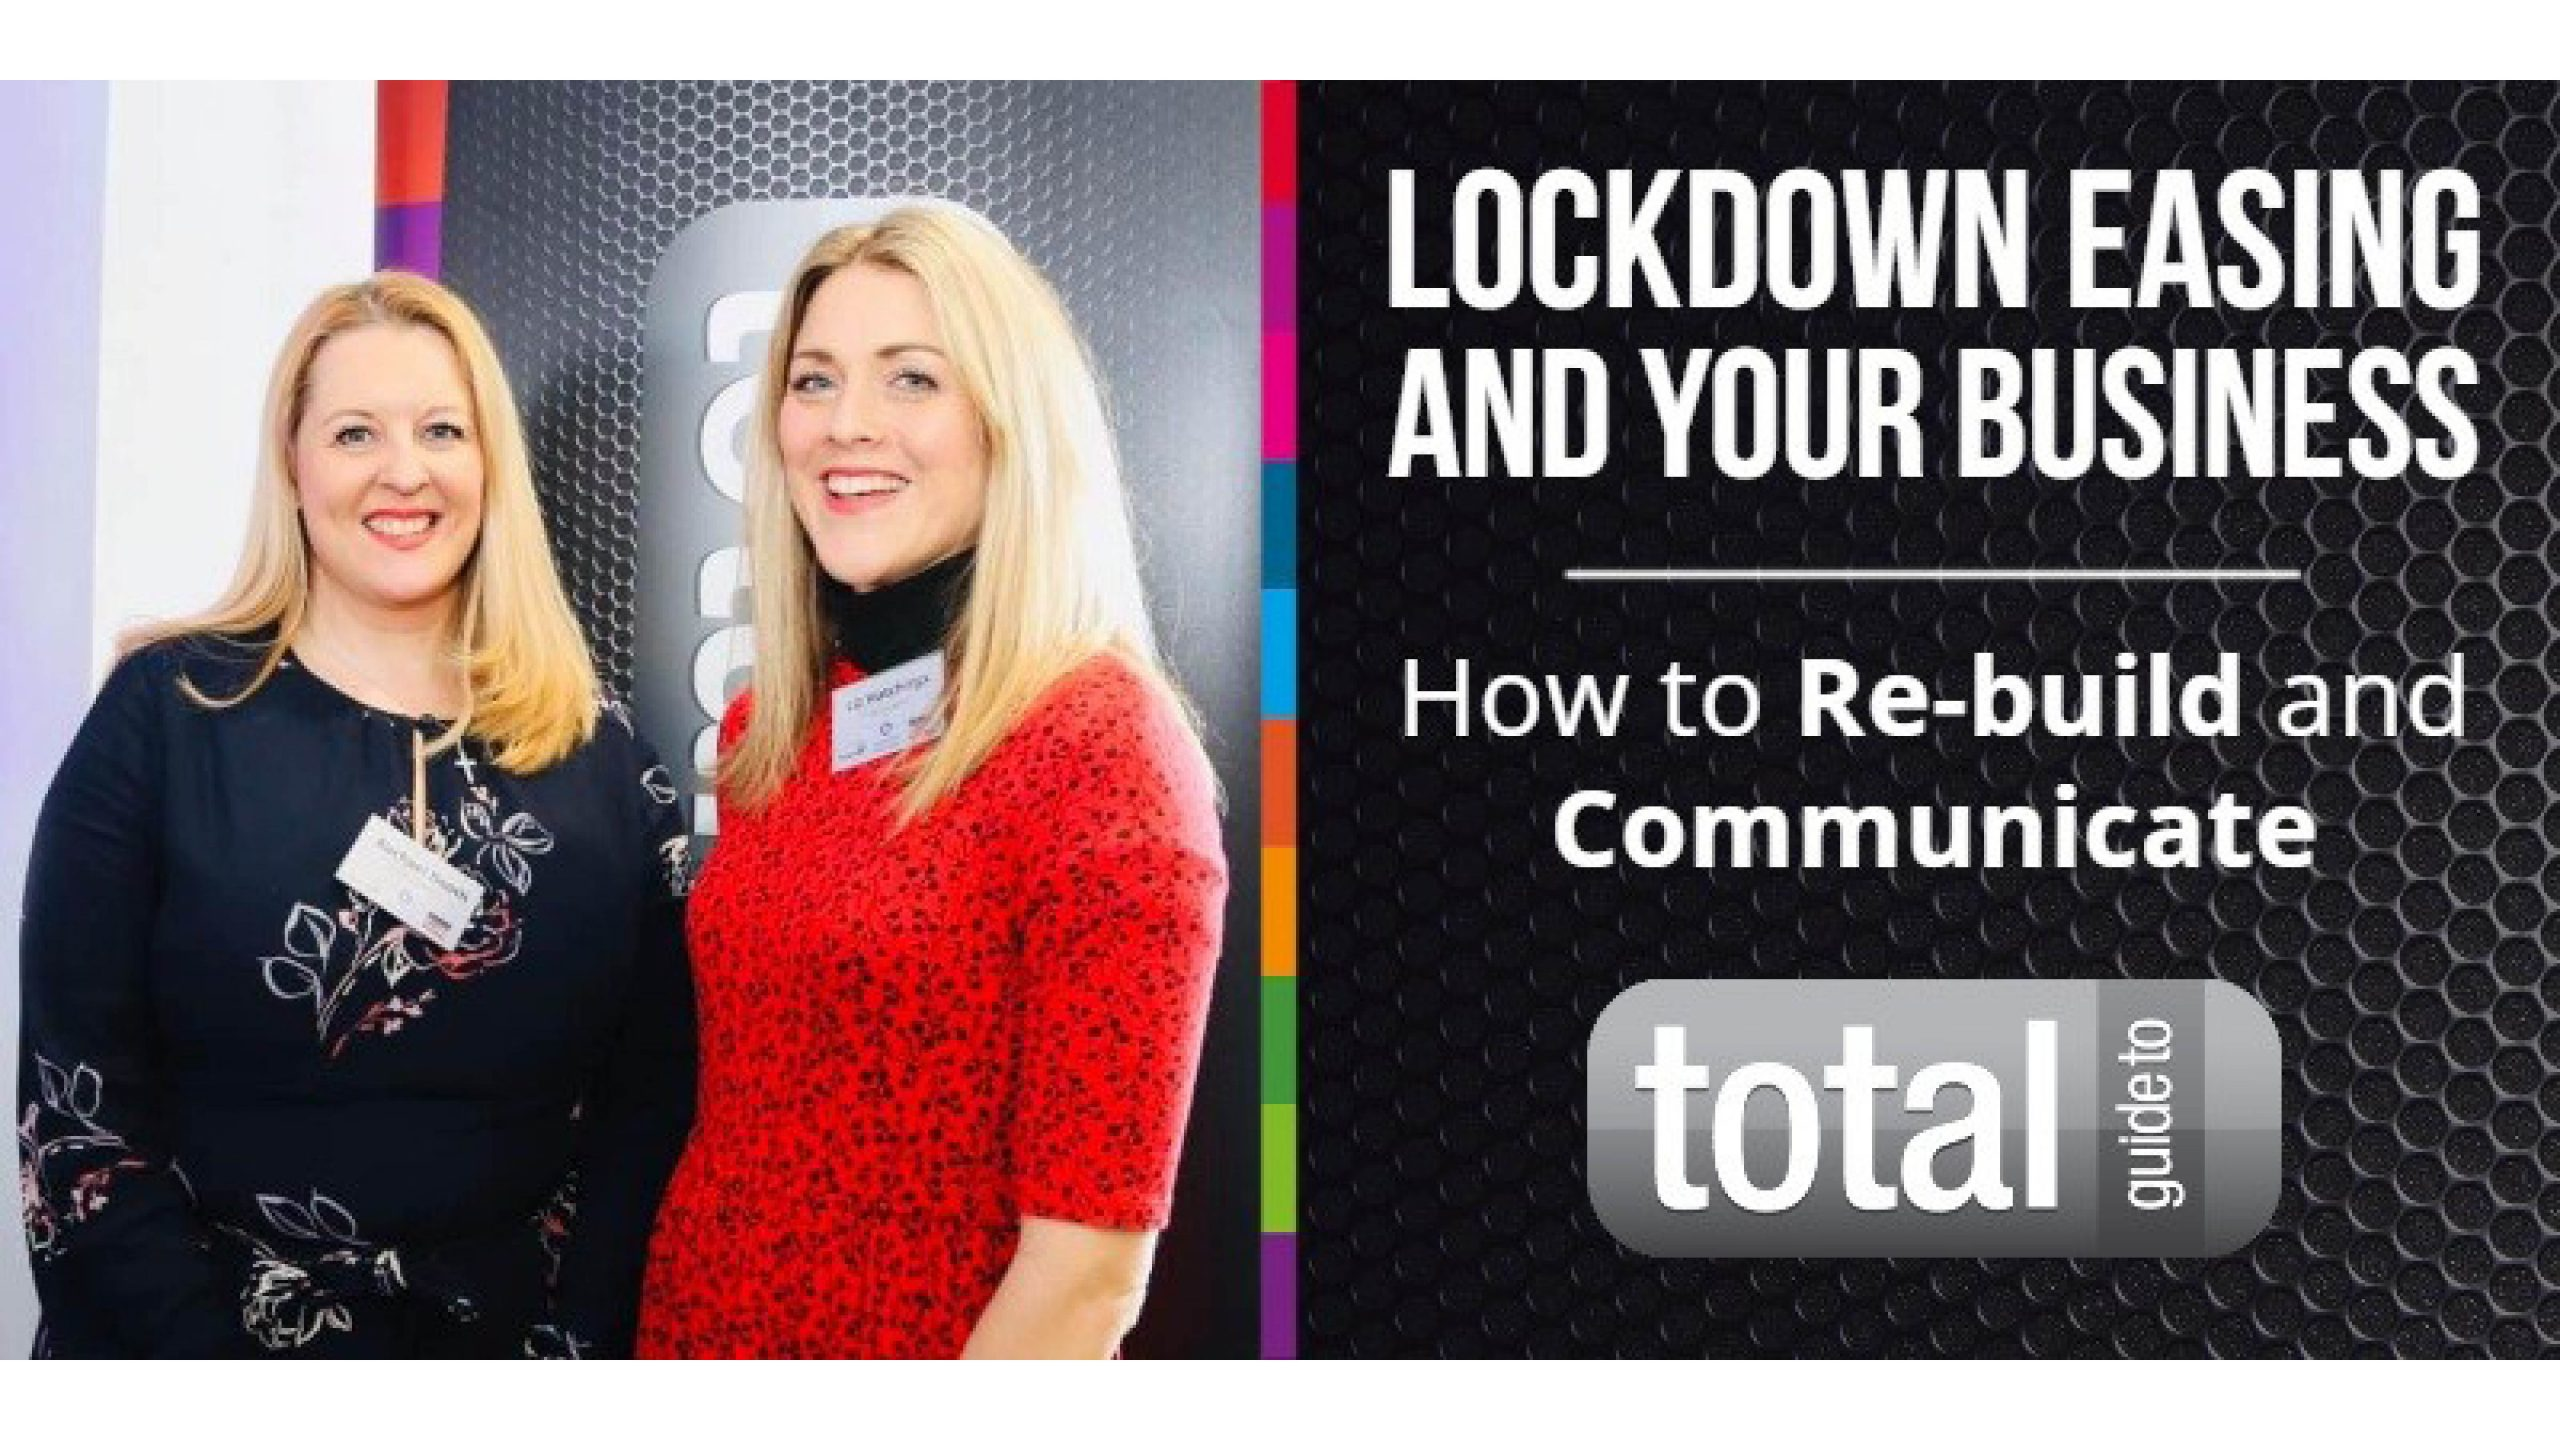 Lockdown Easing and Your Business